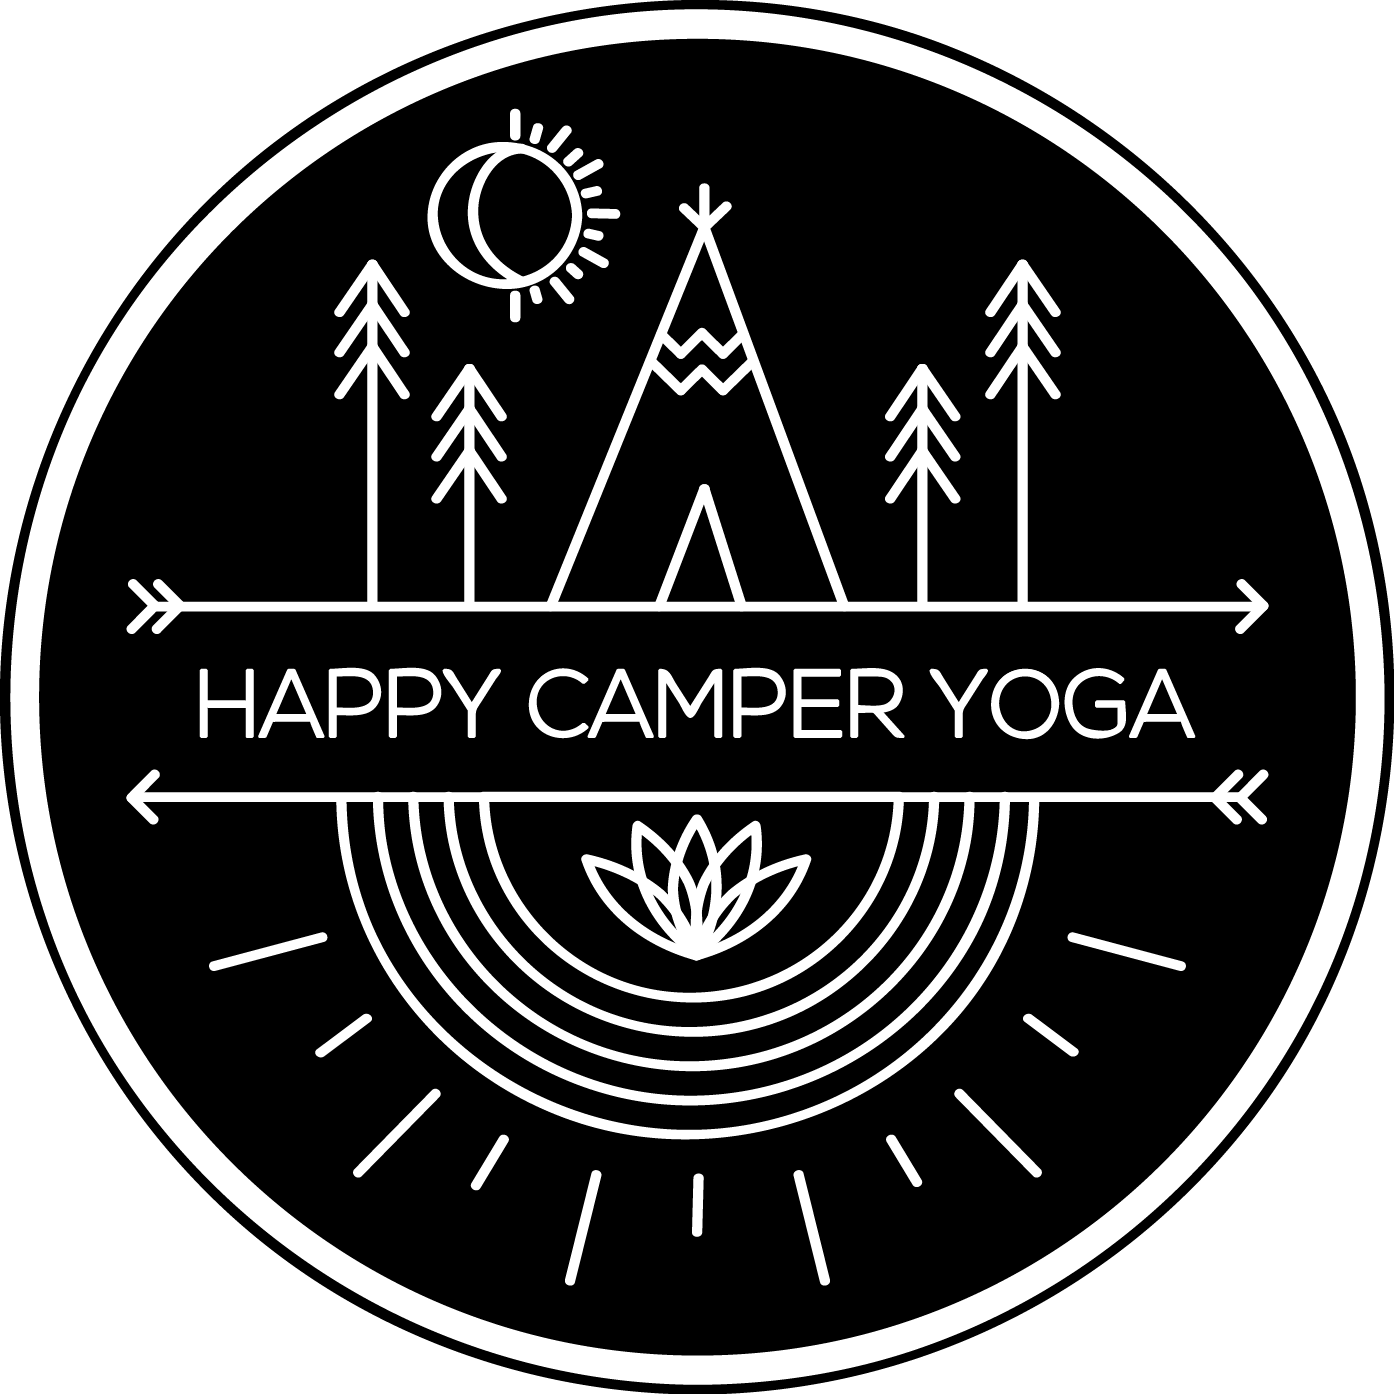 WHERE YOGA MEETS THE WILDERNESS